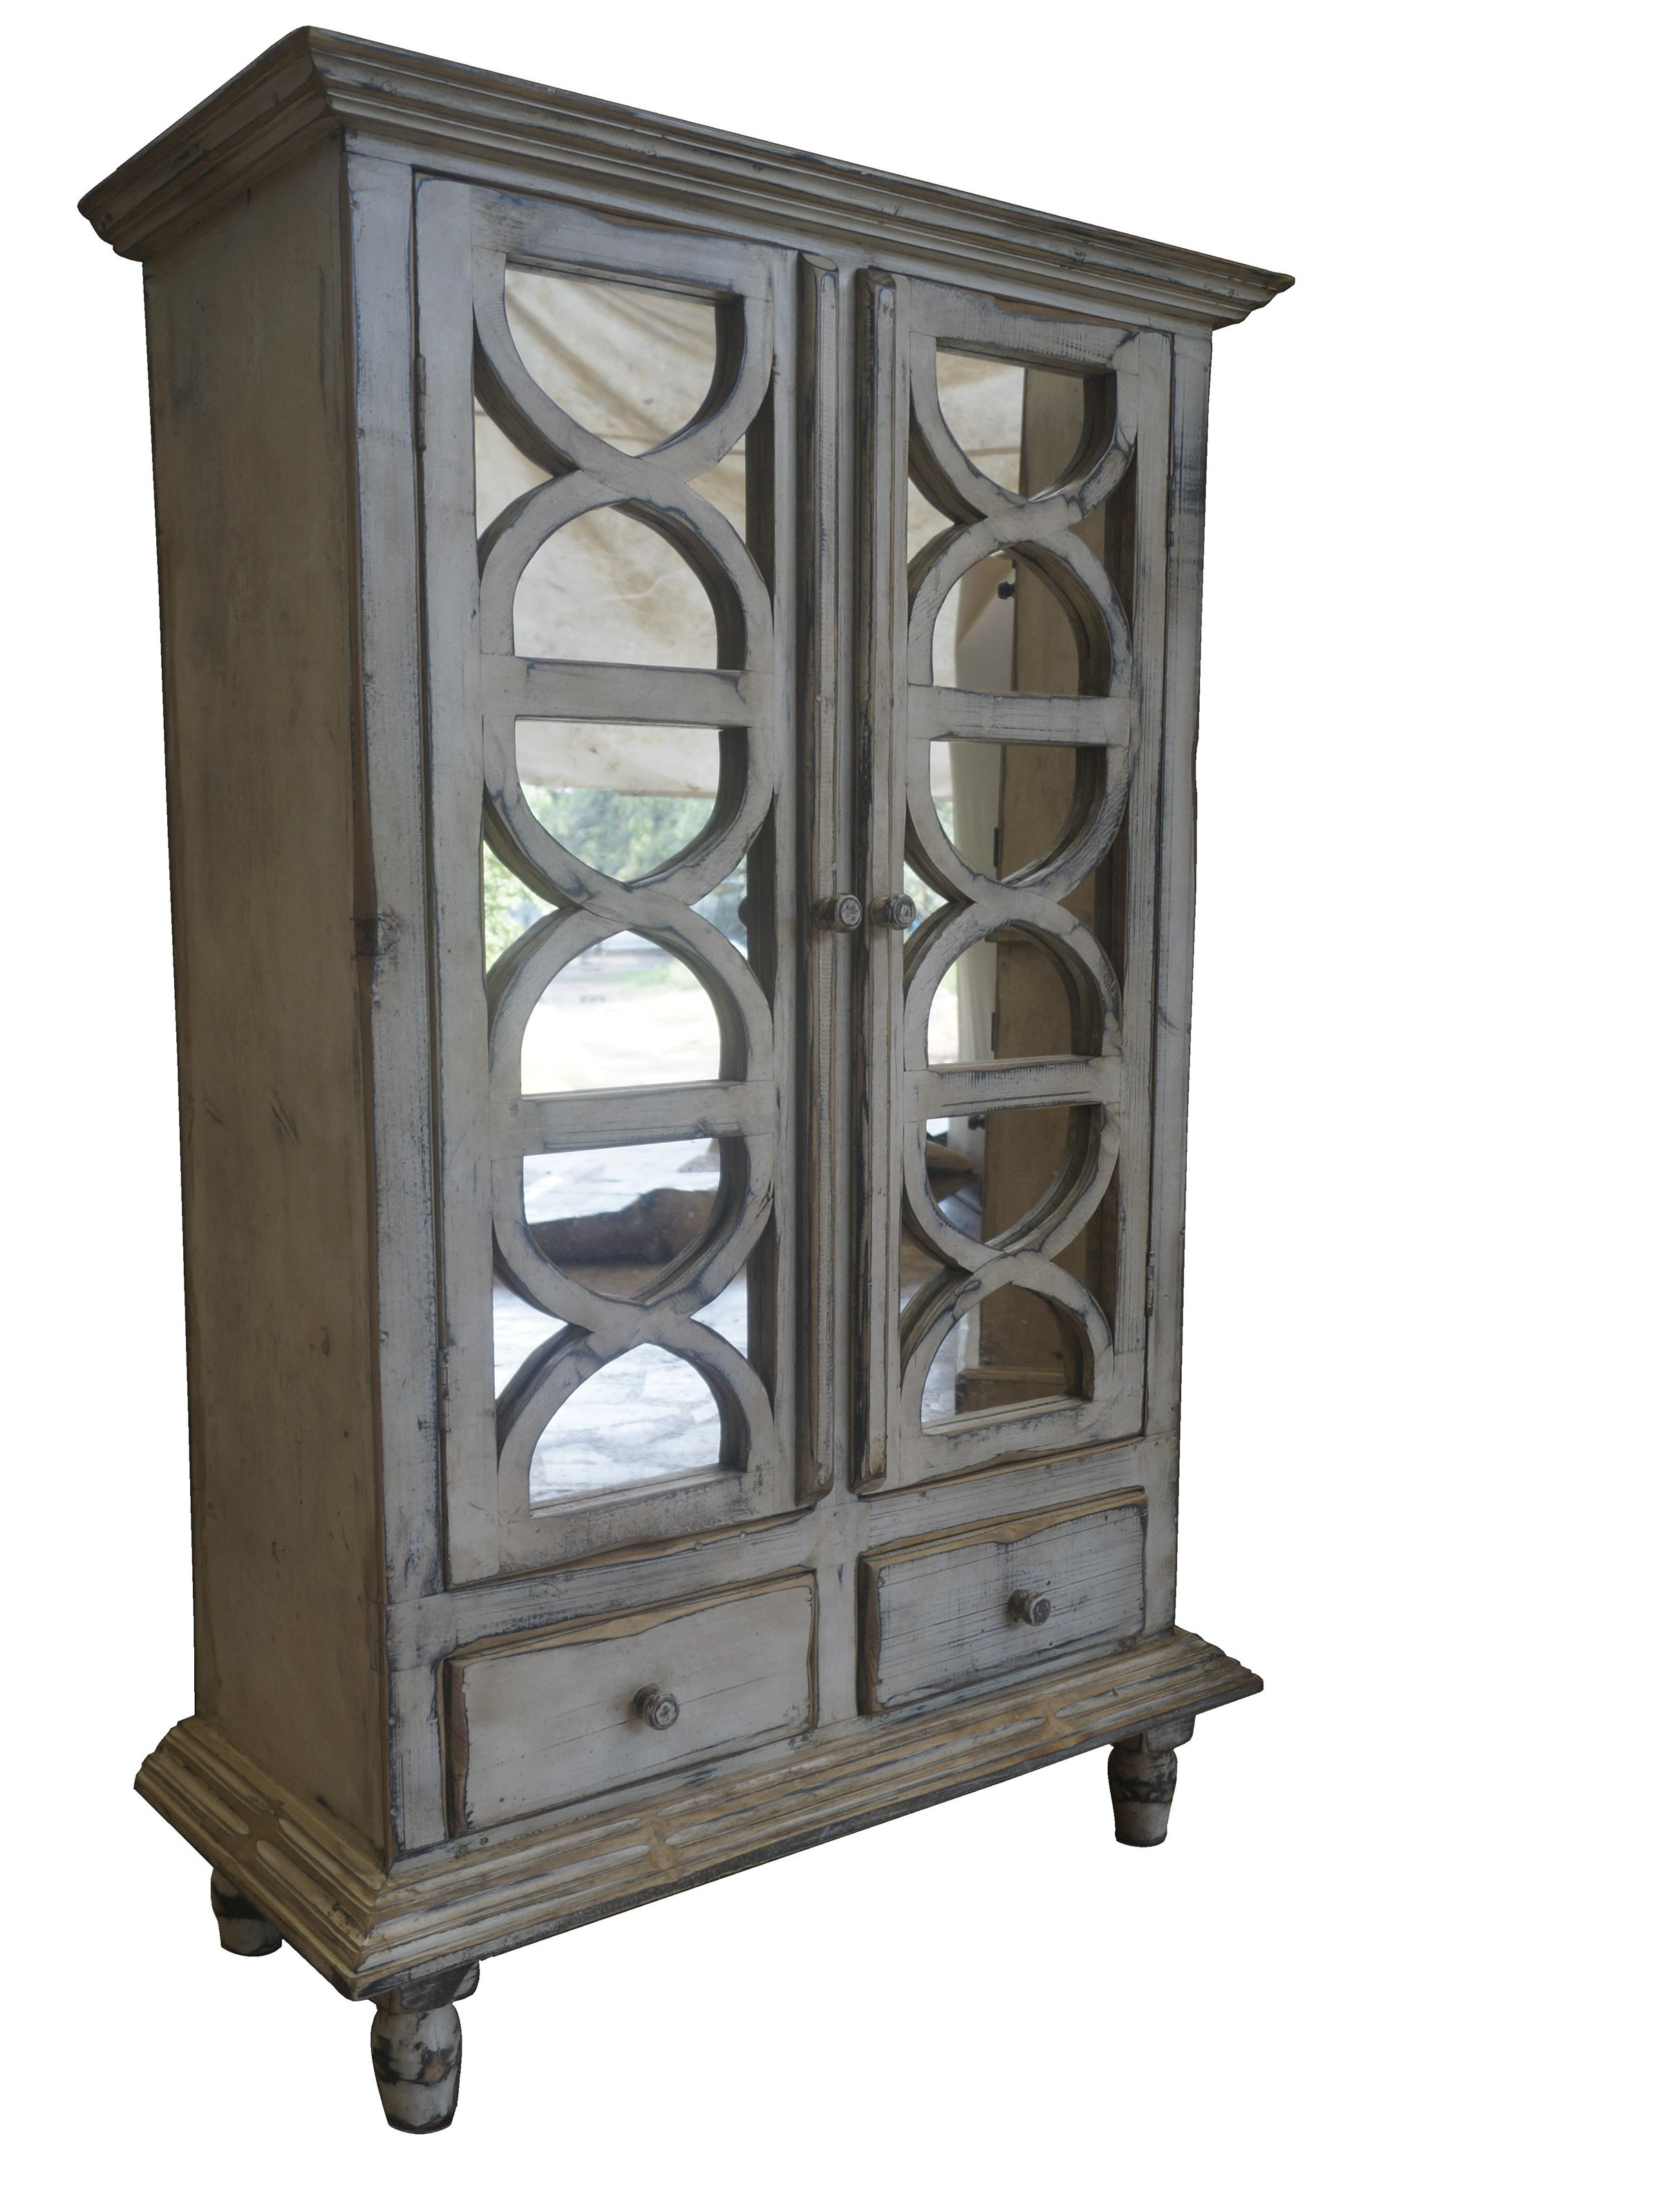 Furniture Source International Accent Pieces Bartlett Armoire - Item Number: FSI-TH-175CHE